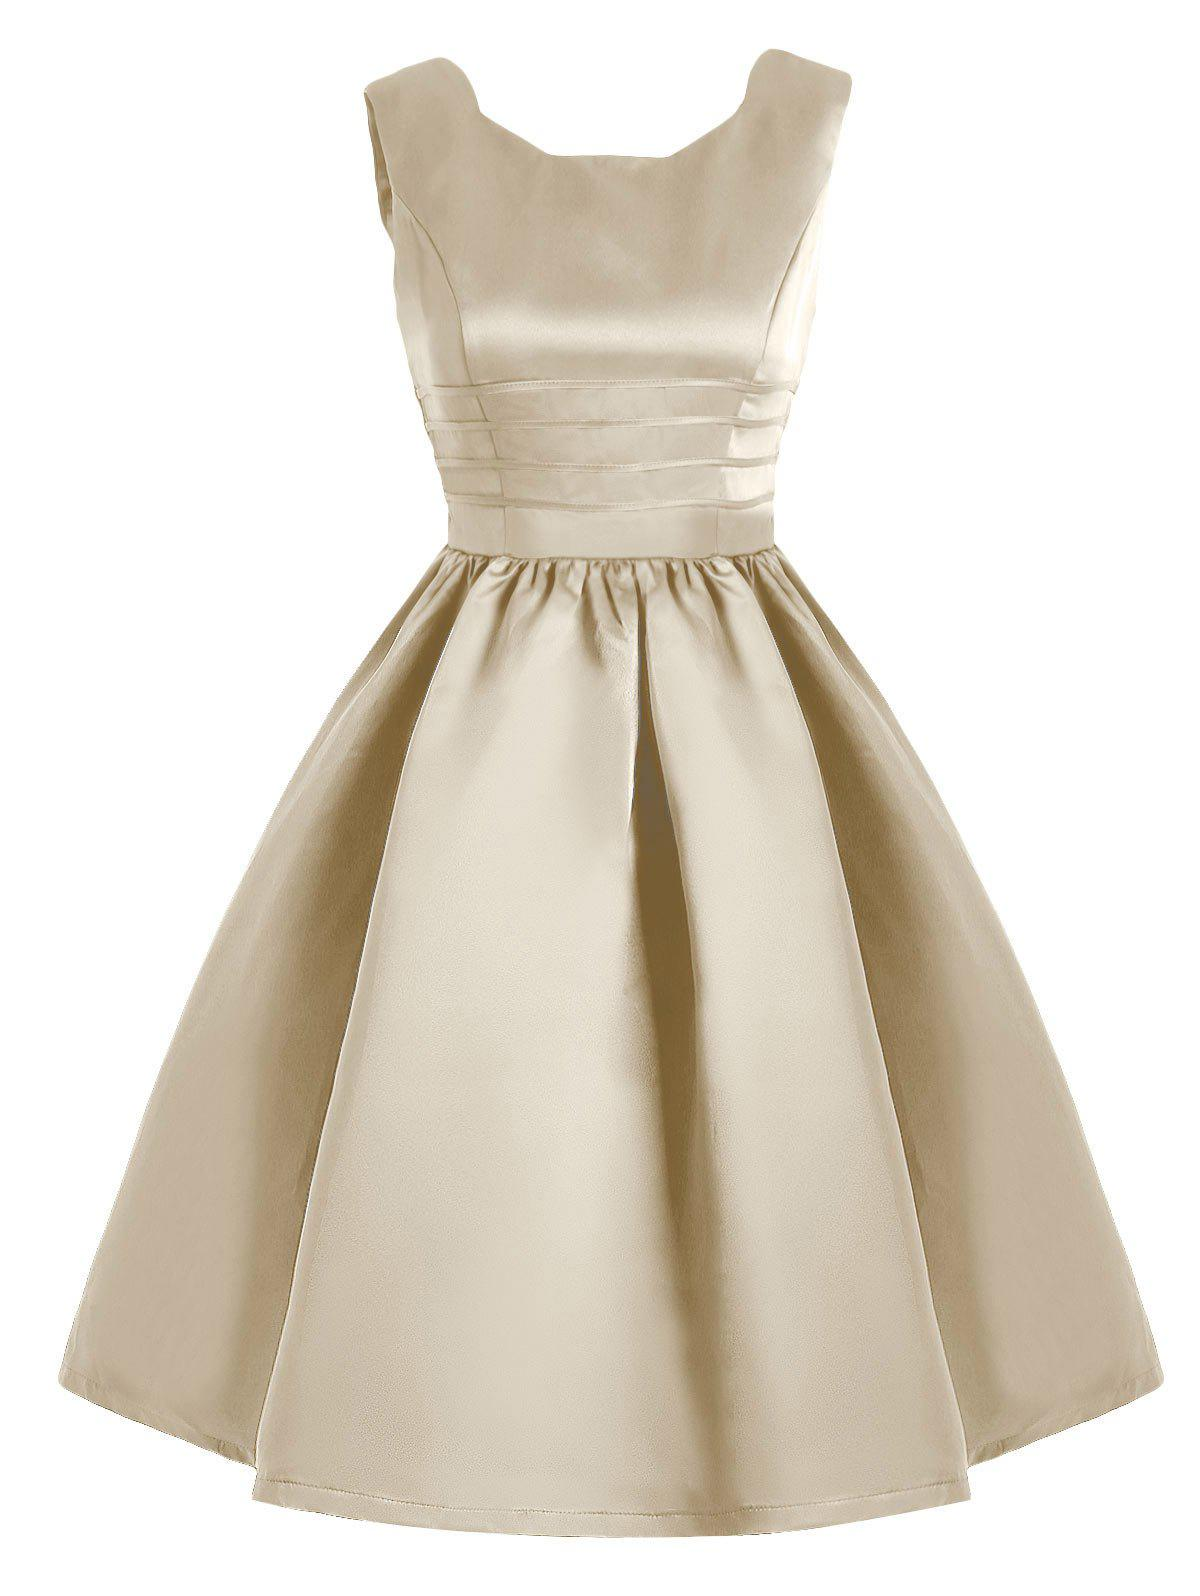 Affordable Sweetheart Neck Vintage Fit and Flare Dress